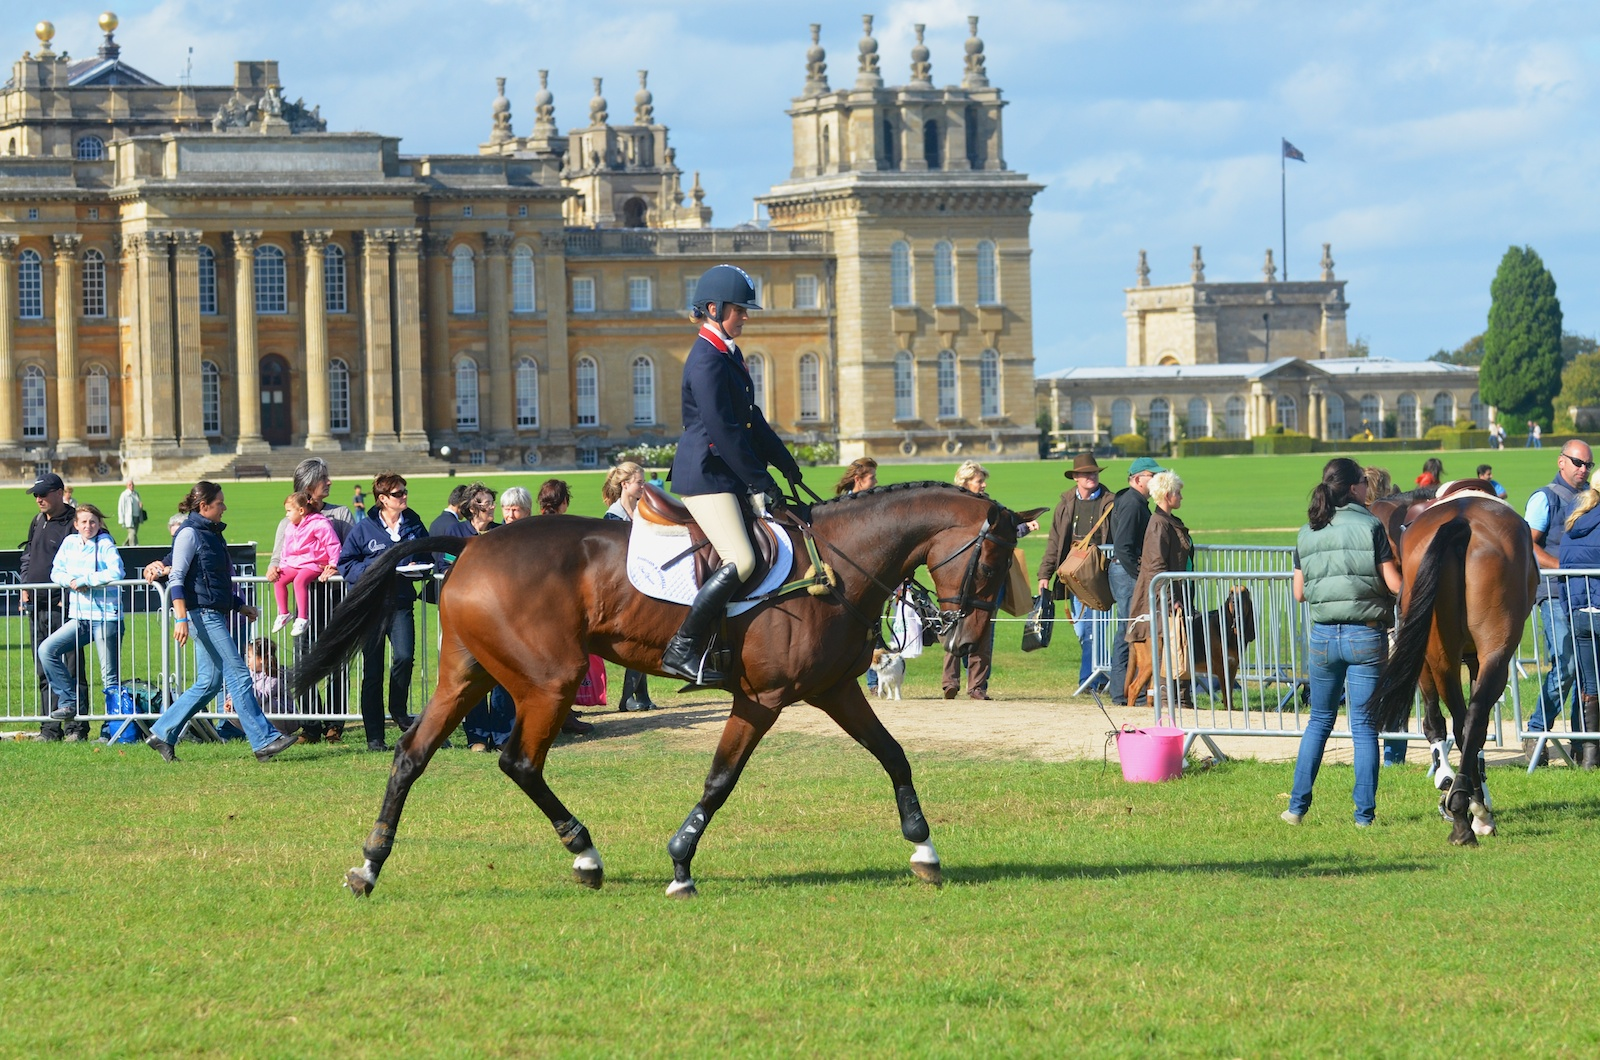 Piggy French Warms Up To Win Blenheim CCI***